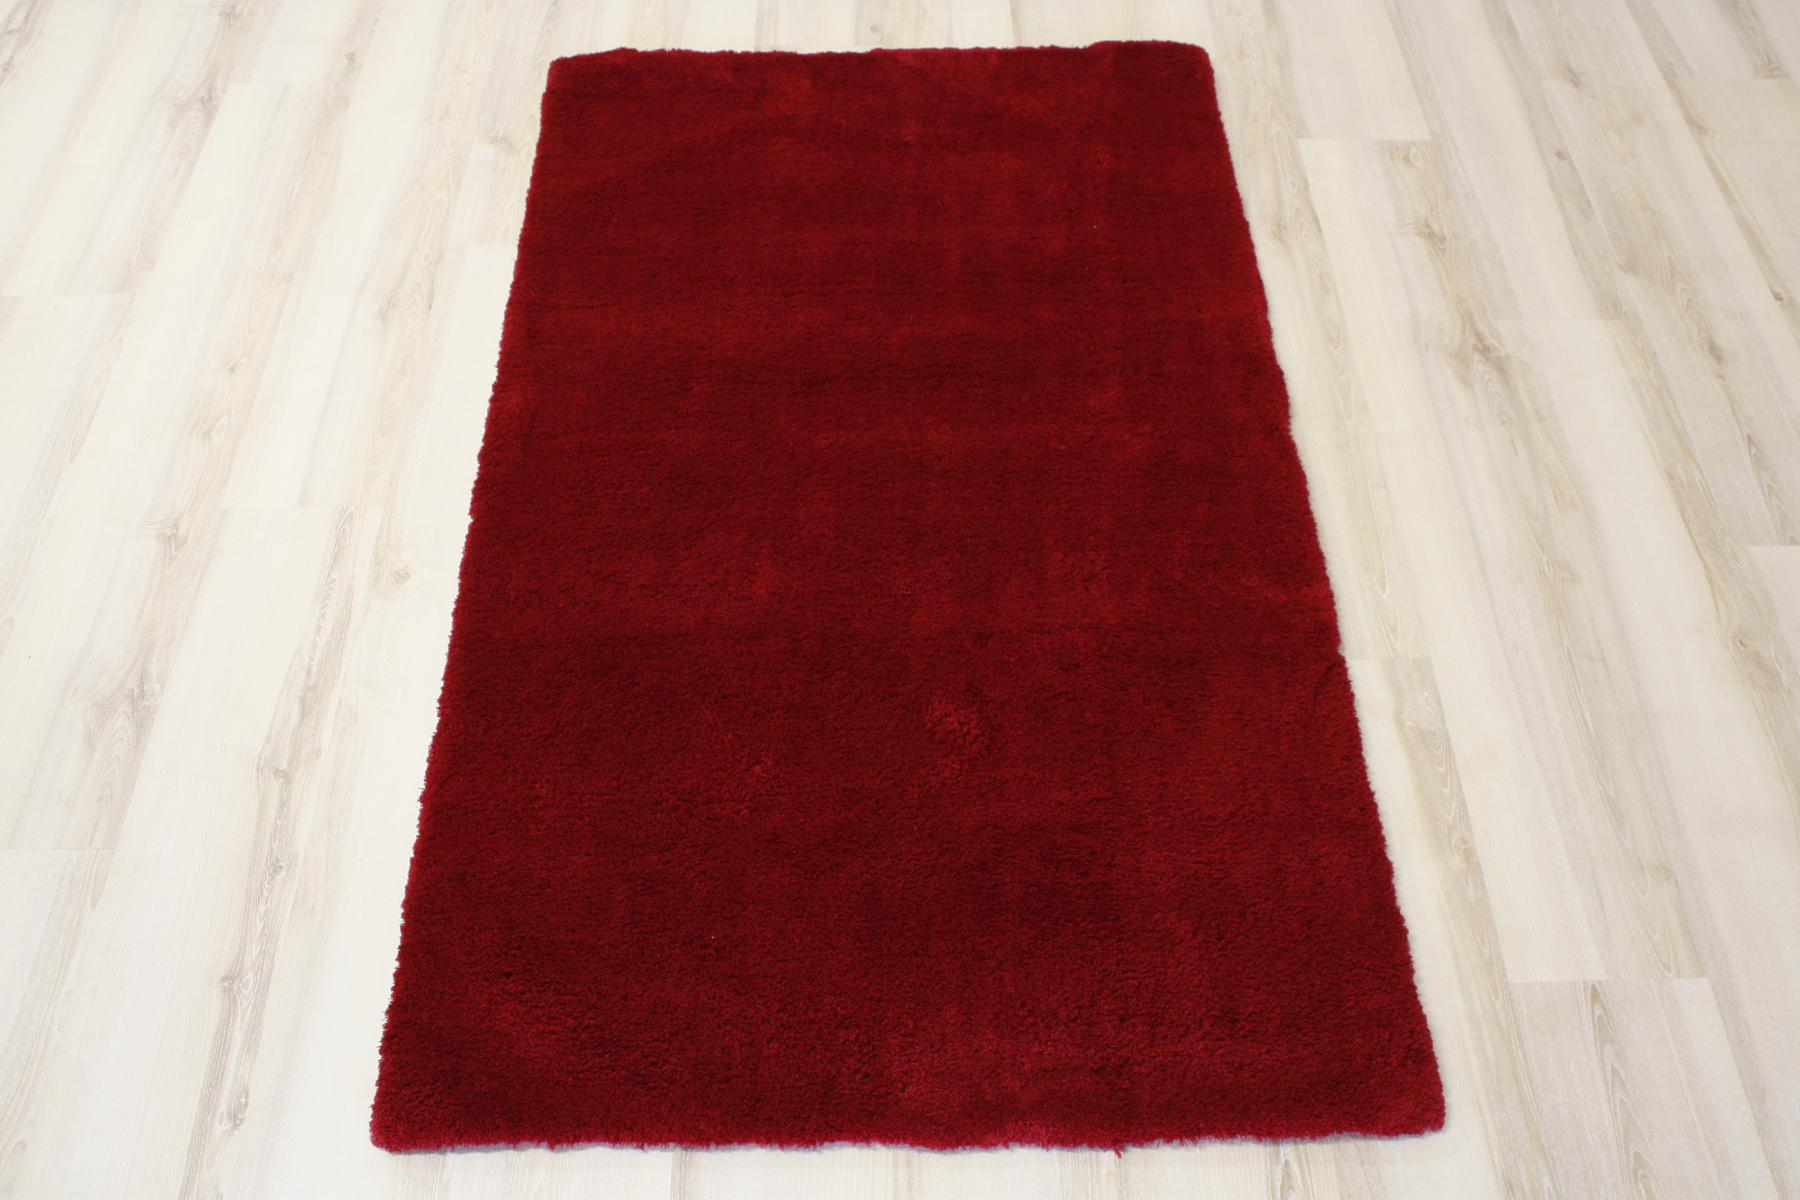 tapis poil long astra livorno 010 rouge 90x160 cm souple. Black Bedroom Furniture Sets. Home Design Ideas